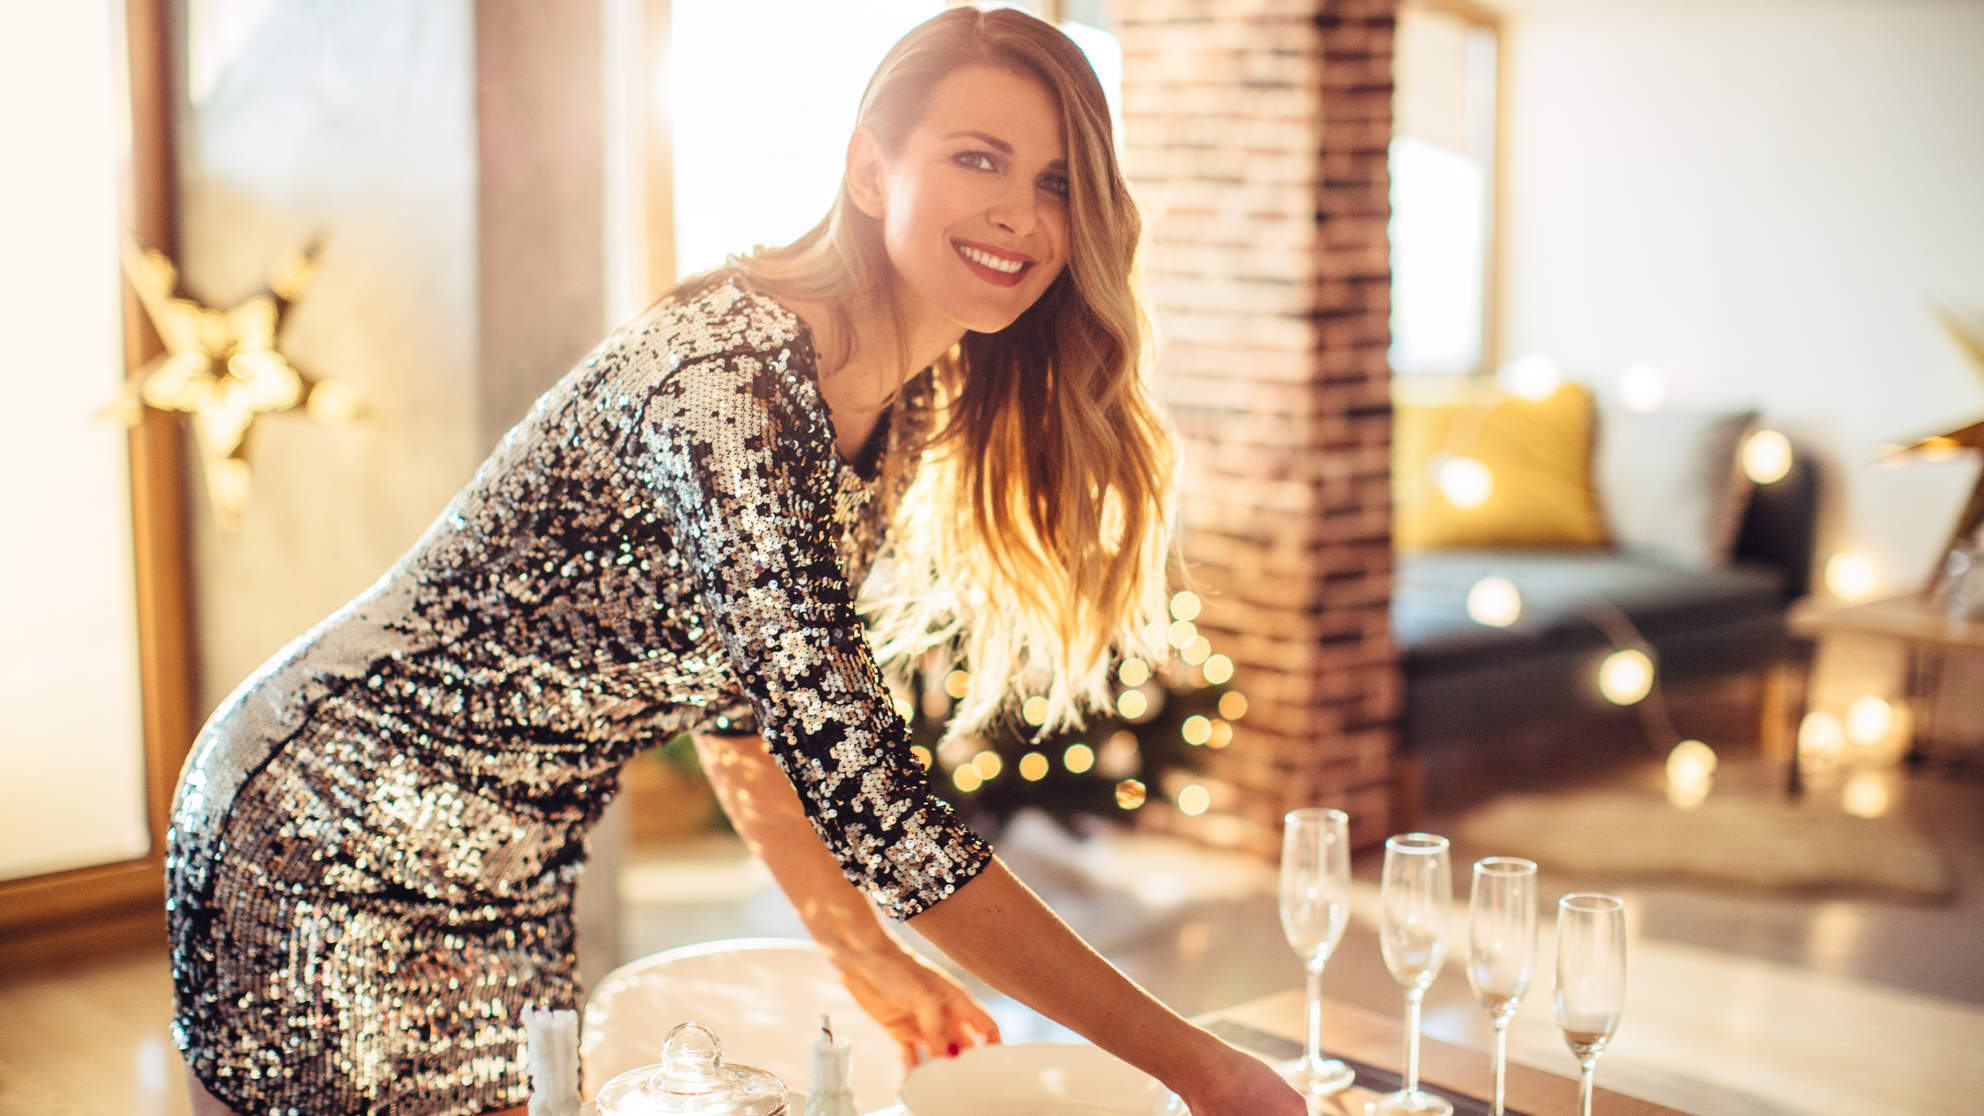 skip workouts during the holidays body positive party dress dinner